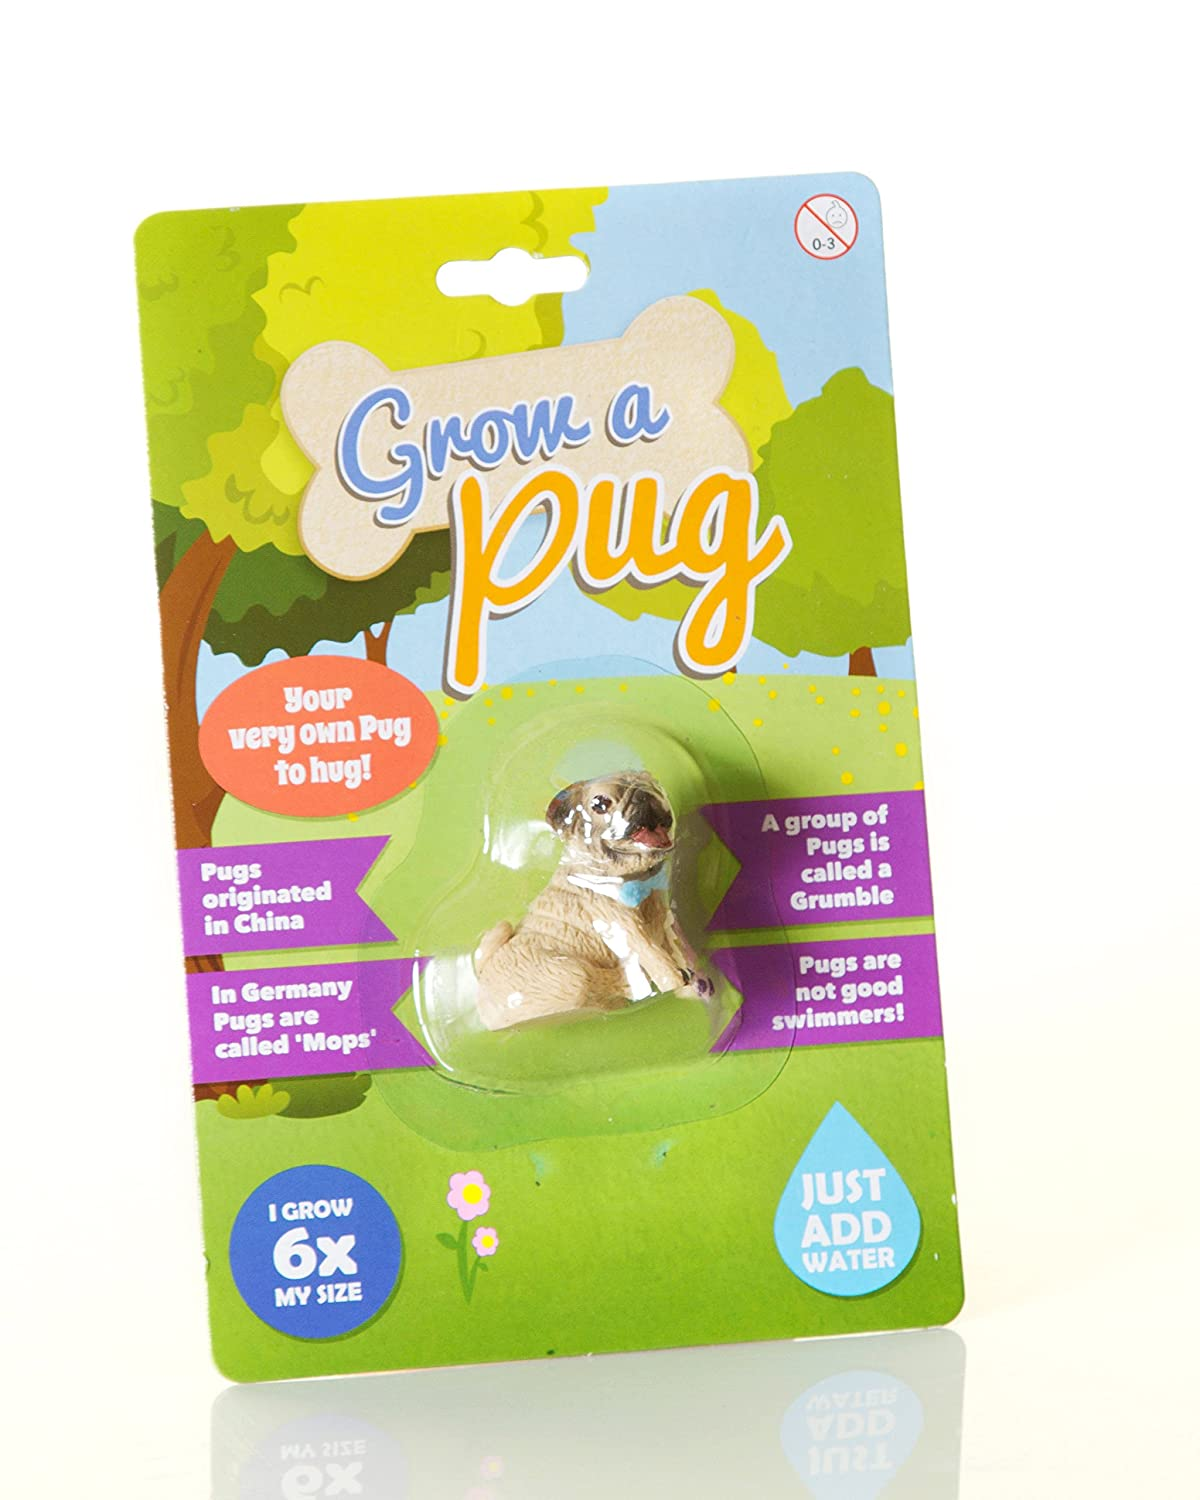 538814f0e63 Boxer Gifts Grow A Pug, Other, Brown: Amazon.co.uk: Kitchen & Home